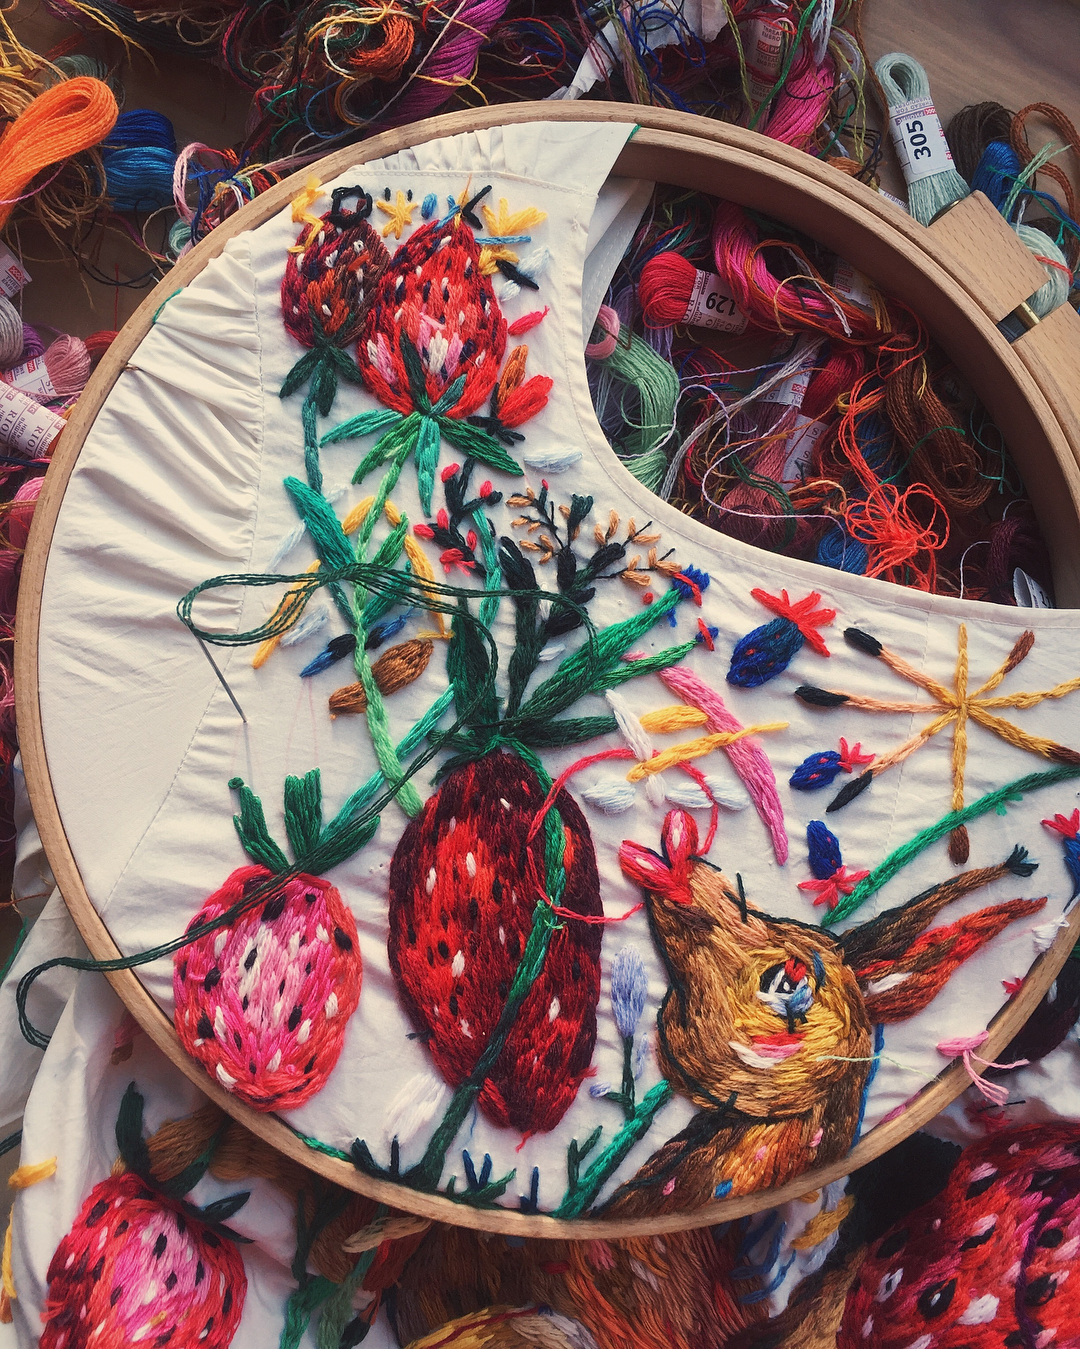 72f445382 Colorful Custom Embroidered Clothing by Lisa Smirnova